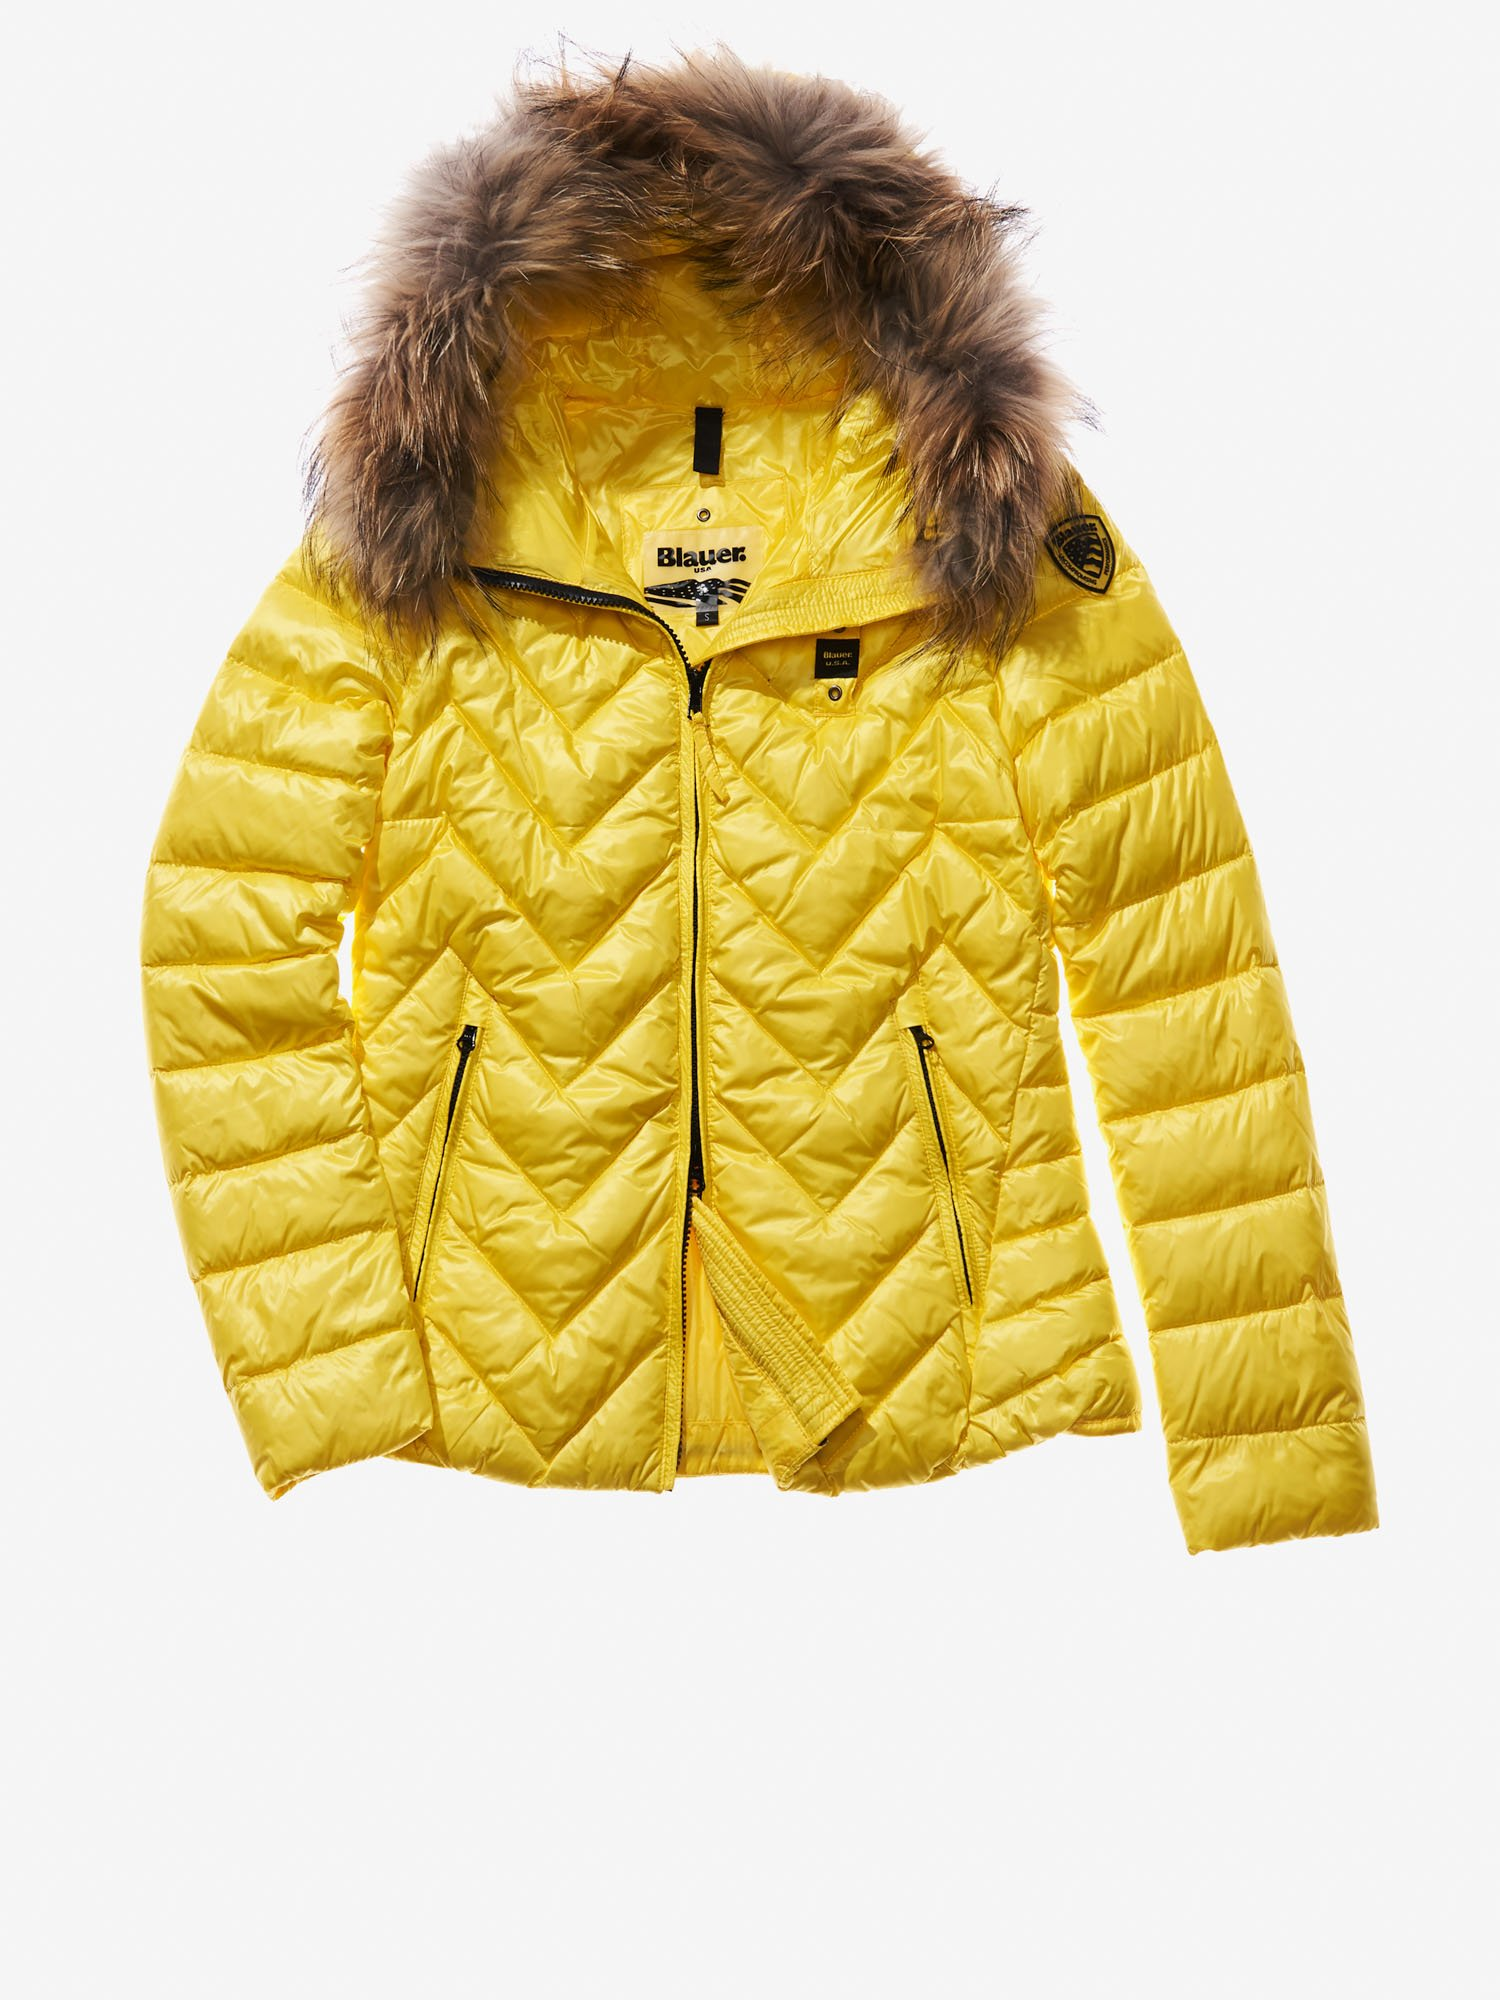 Blauer - SARA ULTRA LIGHT ZIG ZAG-QUILTED DOWN JACKET - Acid Yellow - Blauer